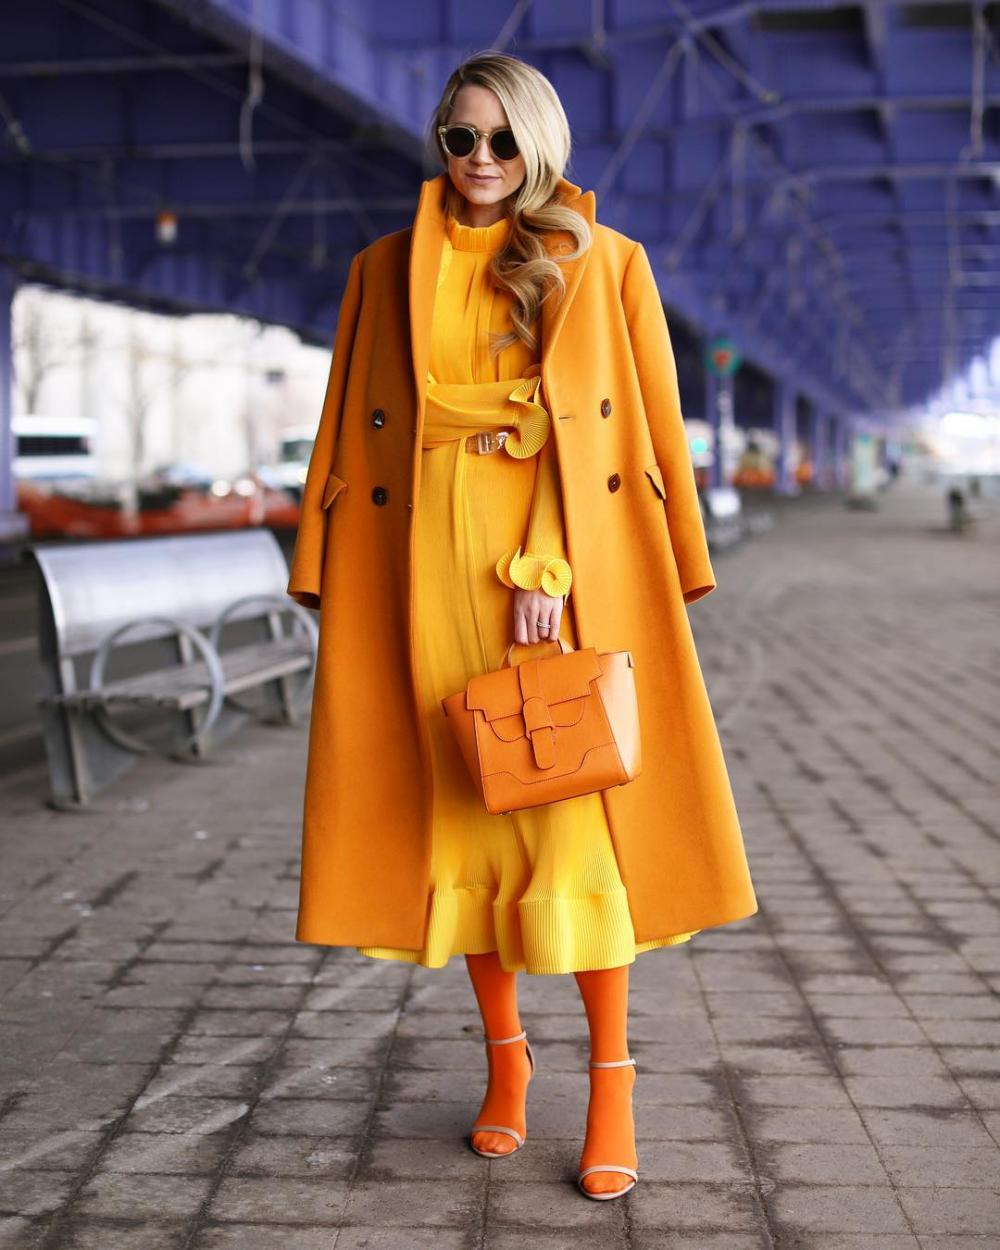 Blair Eadie's orange magnificence